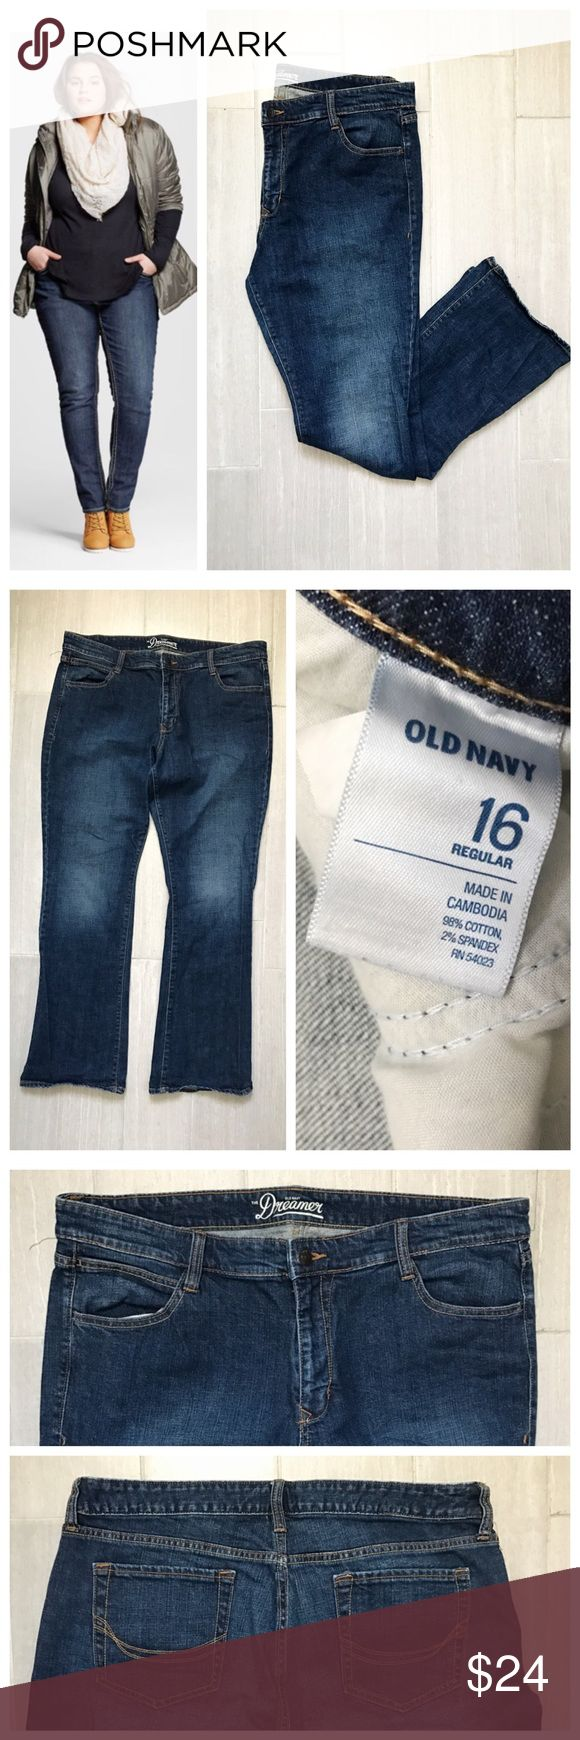 """Old Navy Jeans Denim jeans from Old Navy """"the dreamer"""". First photo on left not actual item just showing for style! BUNDLES 20% OFF 🎉 Old Navy Jeans"""